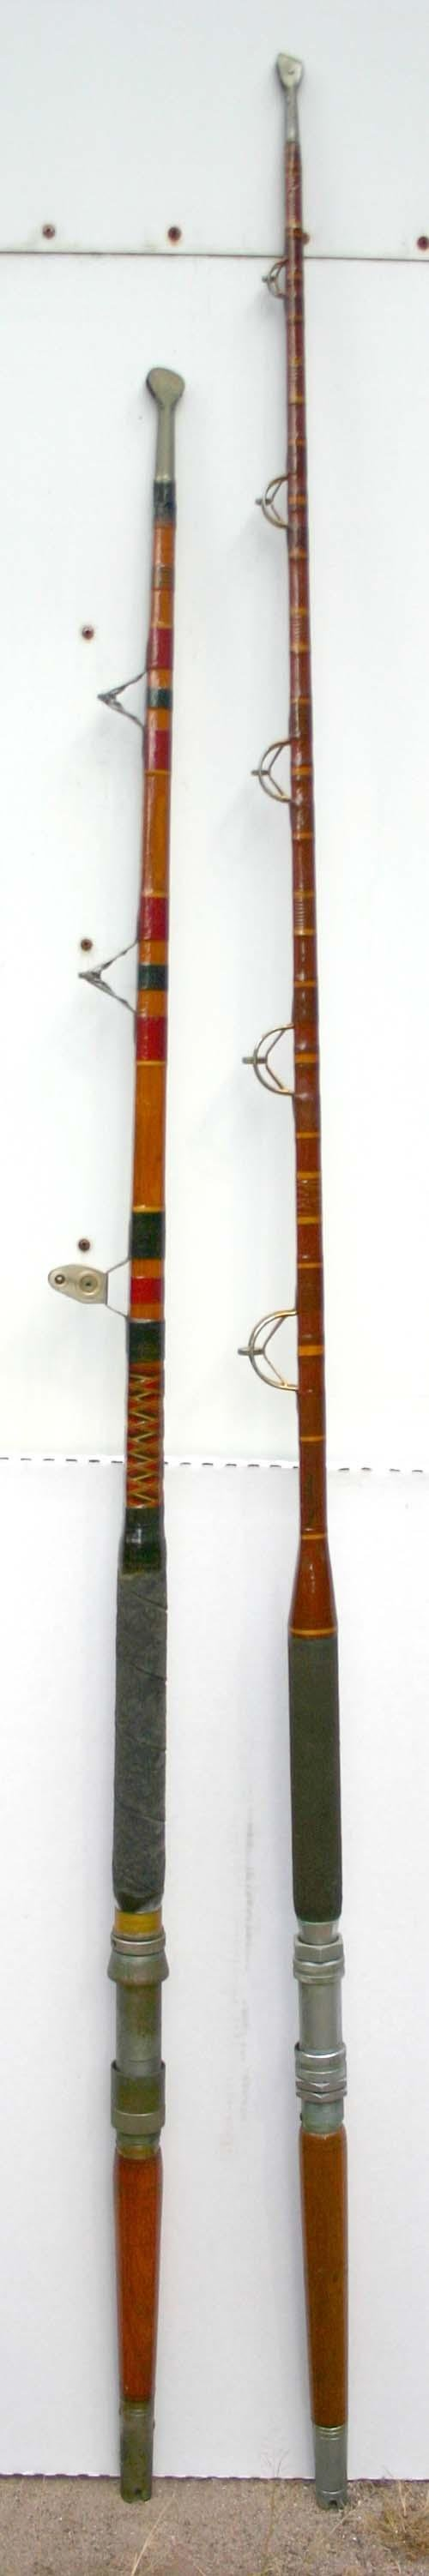 """22: lot of 2 antique salt water fishing rods - 6'10"""" ma"""